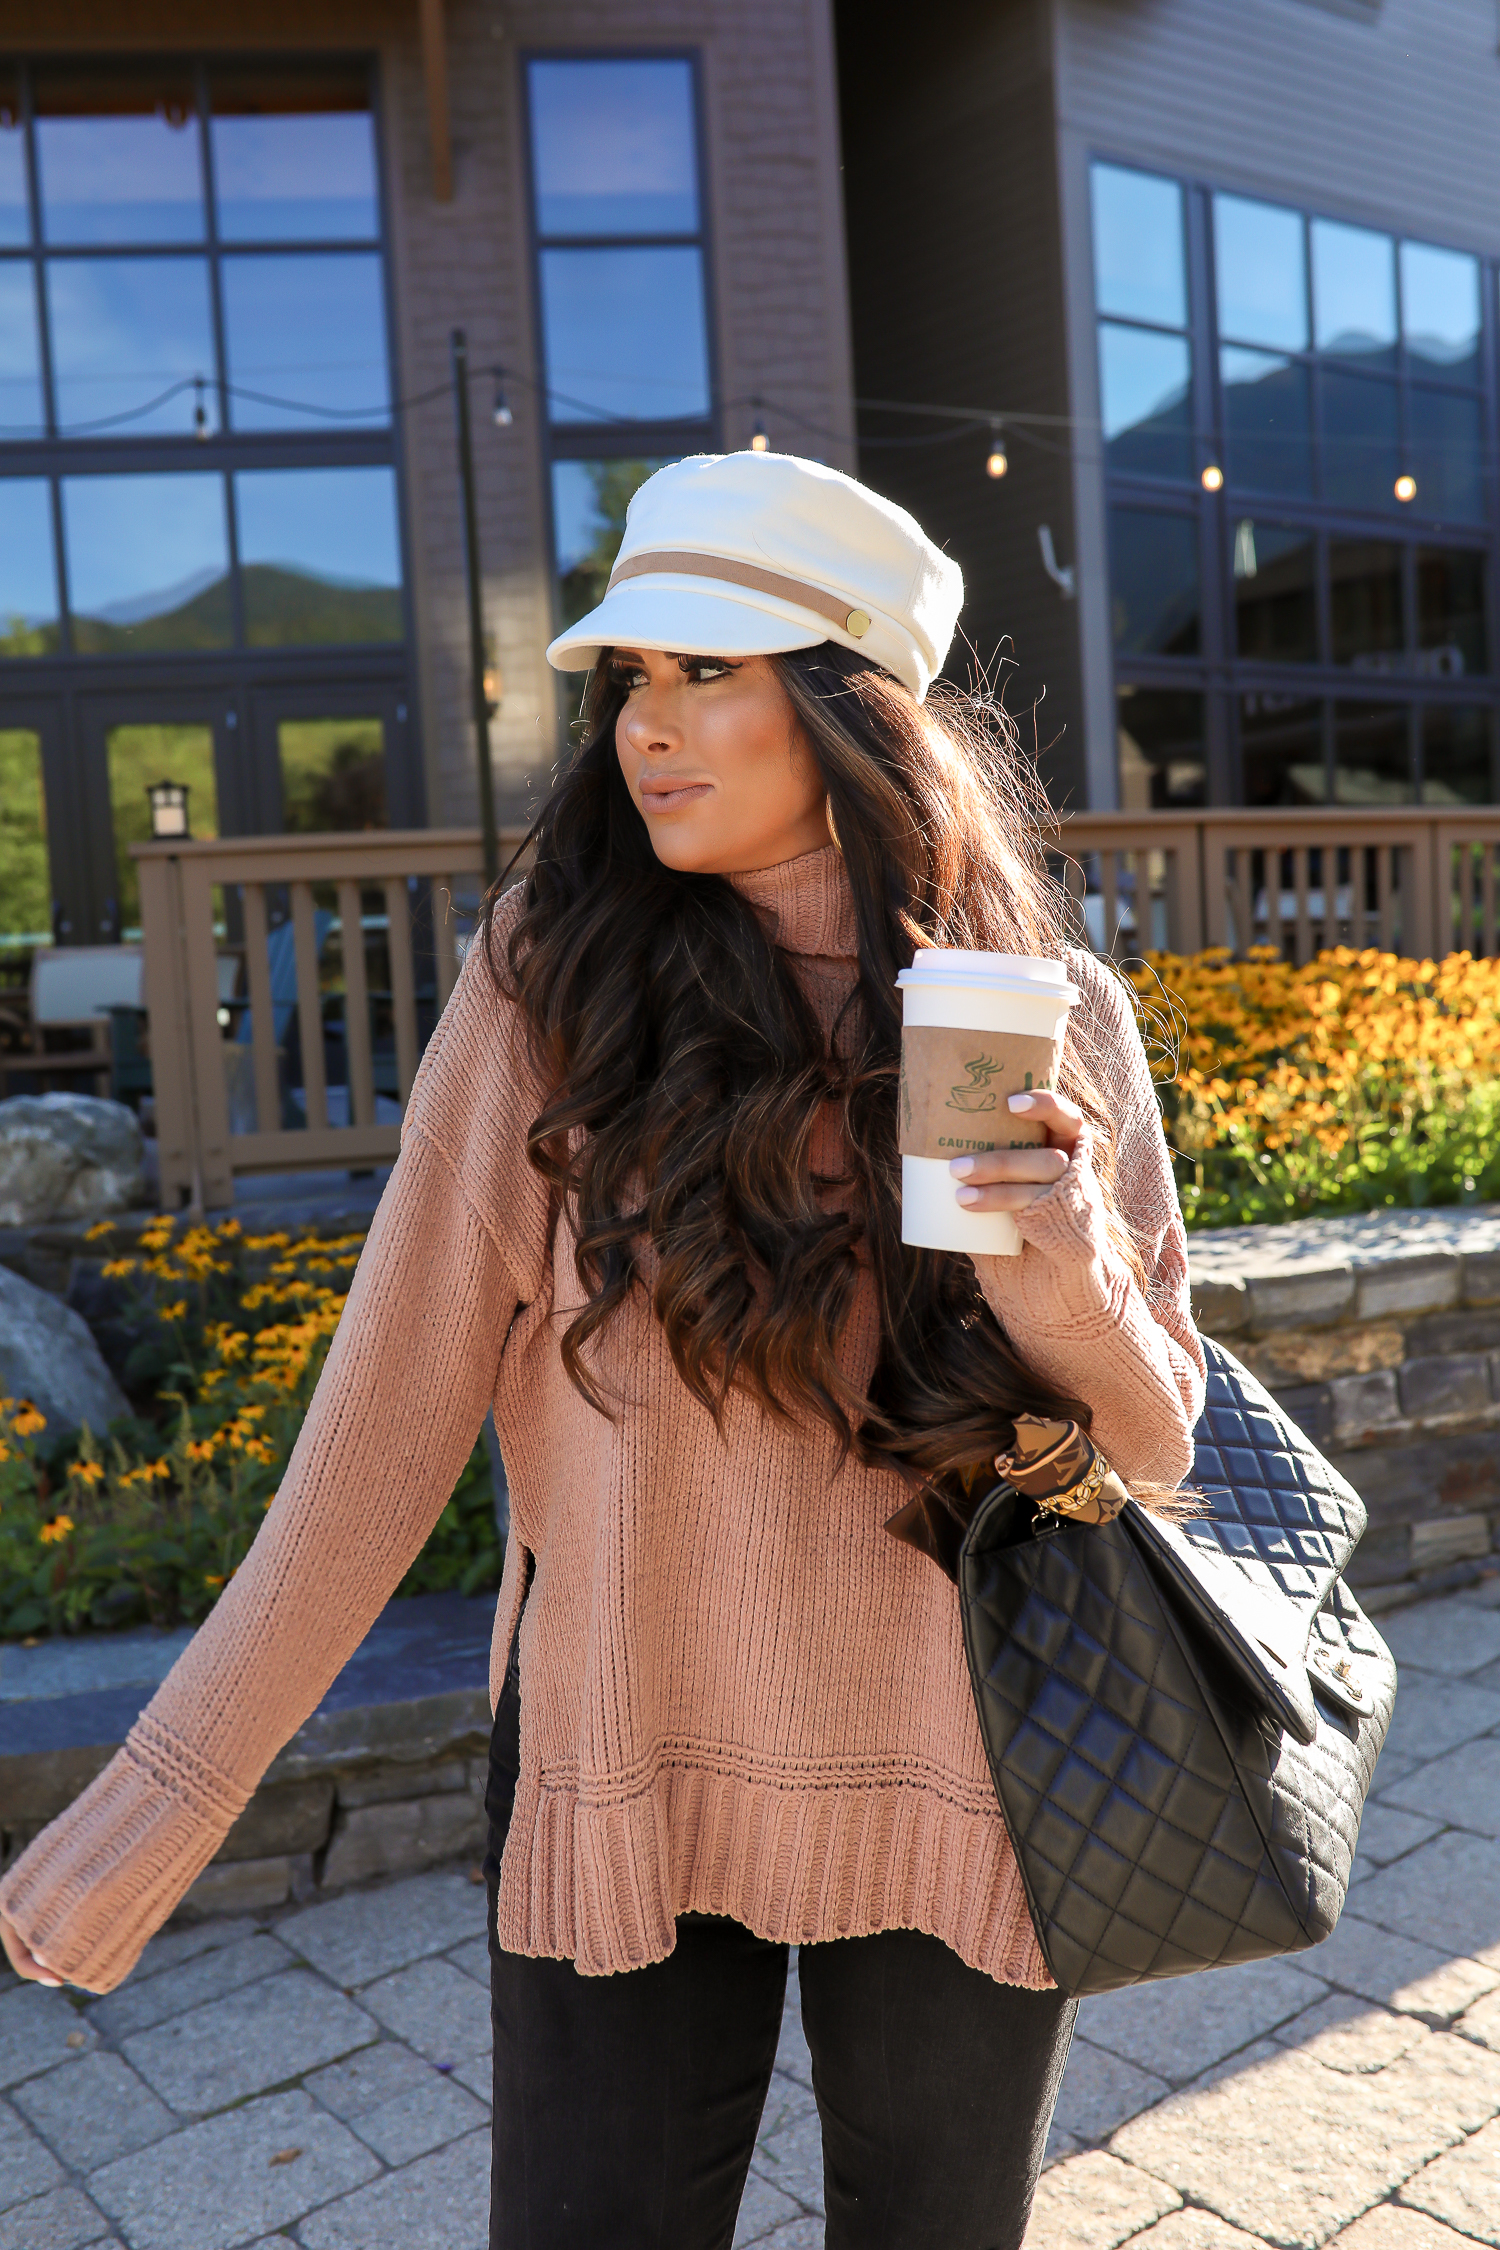 anthropologie white tan baker boy cap, aerie chenille turtleneck sweater, stowe vermont review, emily gemma